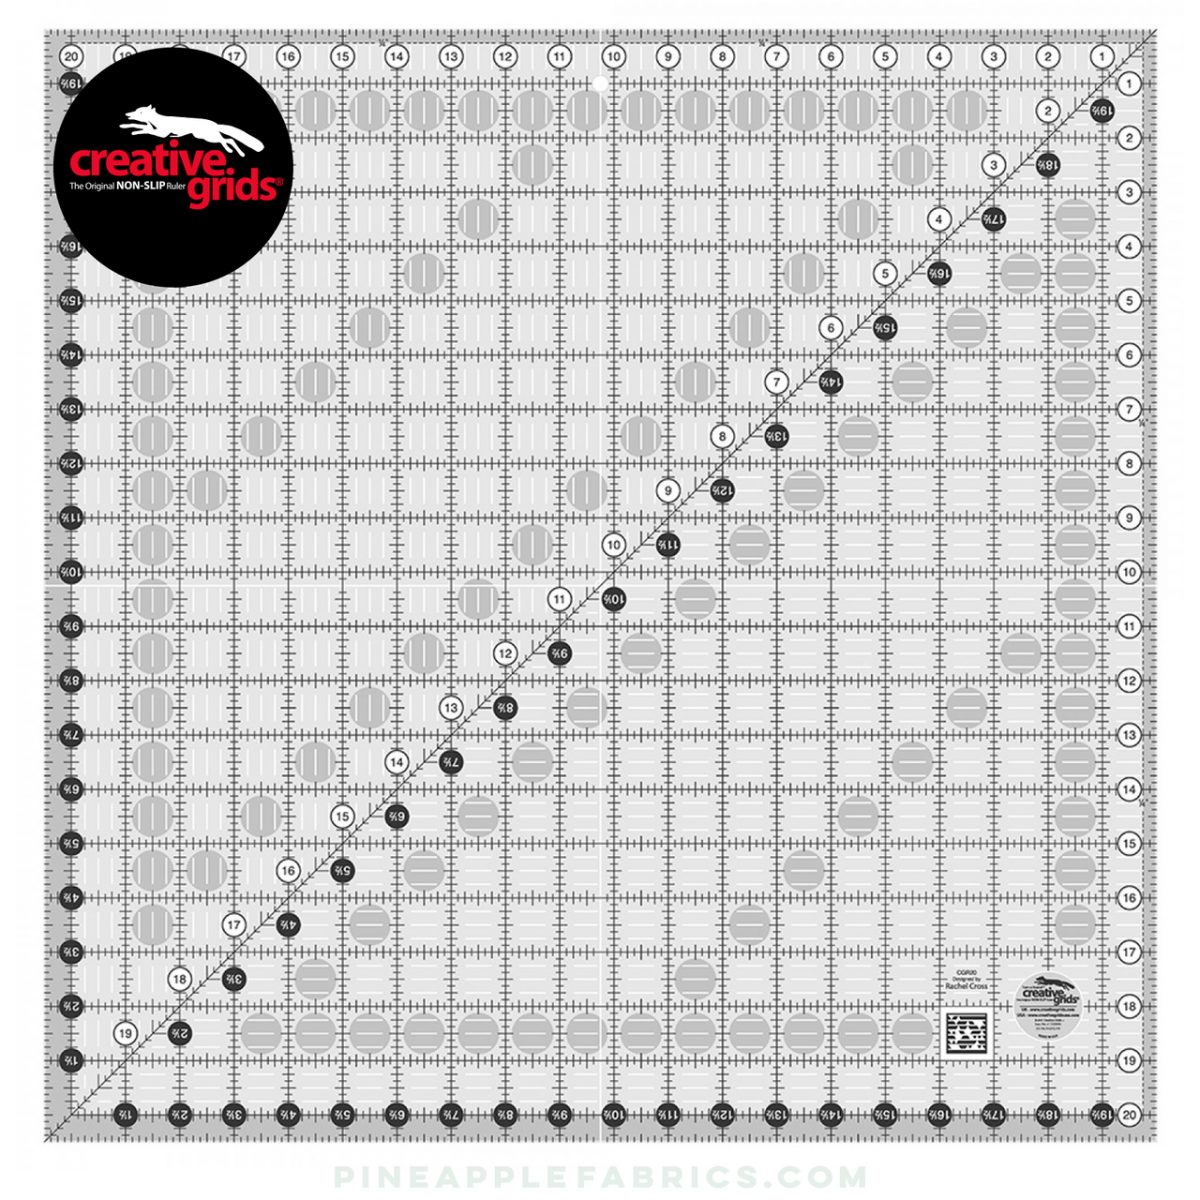 CGR20 - Creative Grids Quilt Ruler 20-1/2in Square